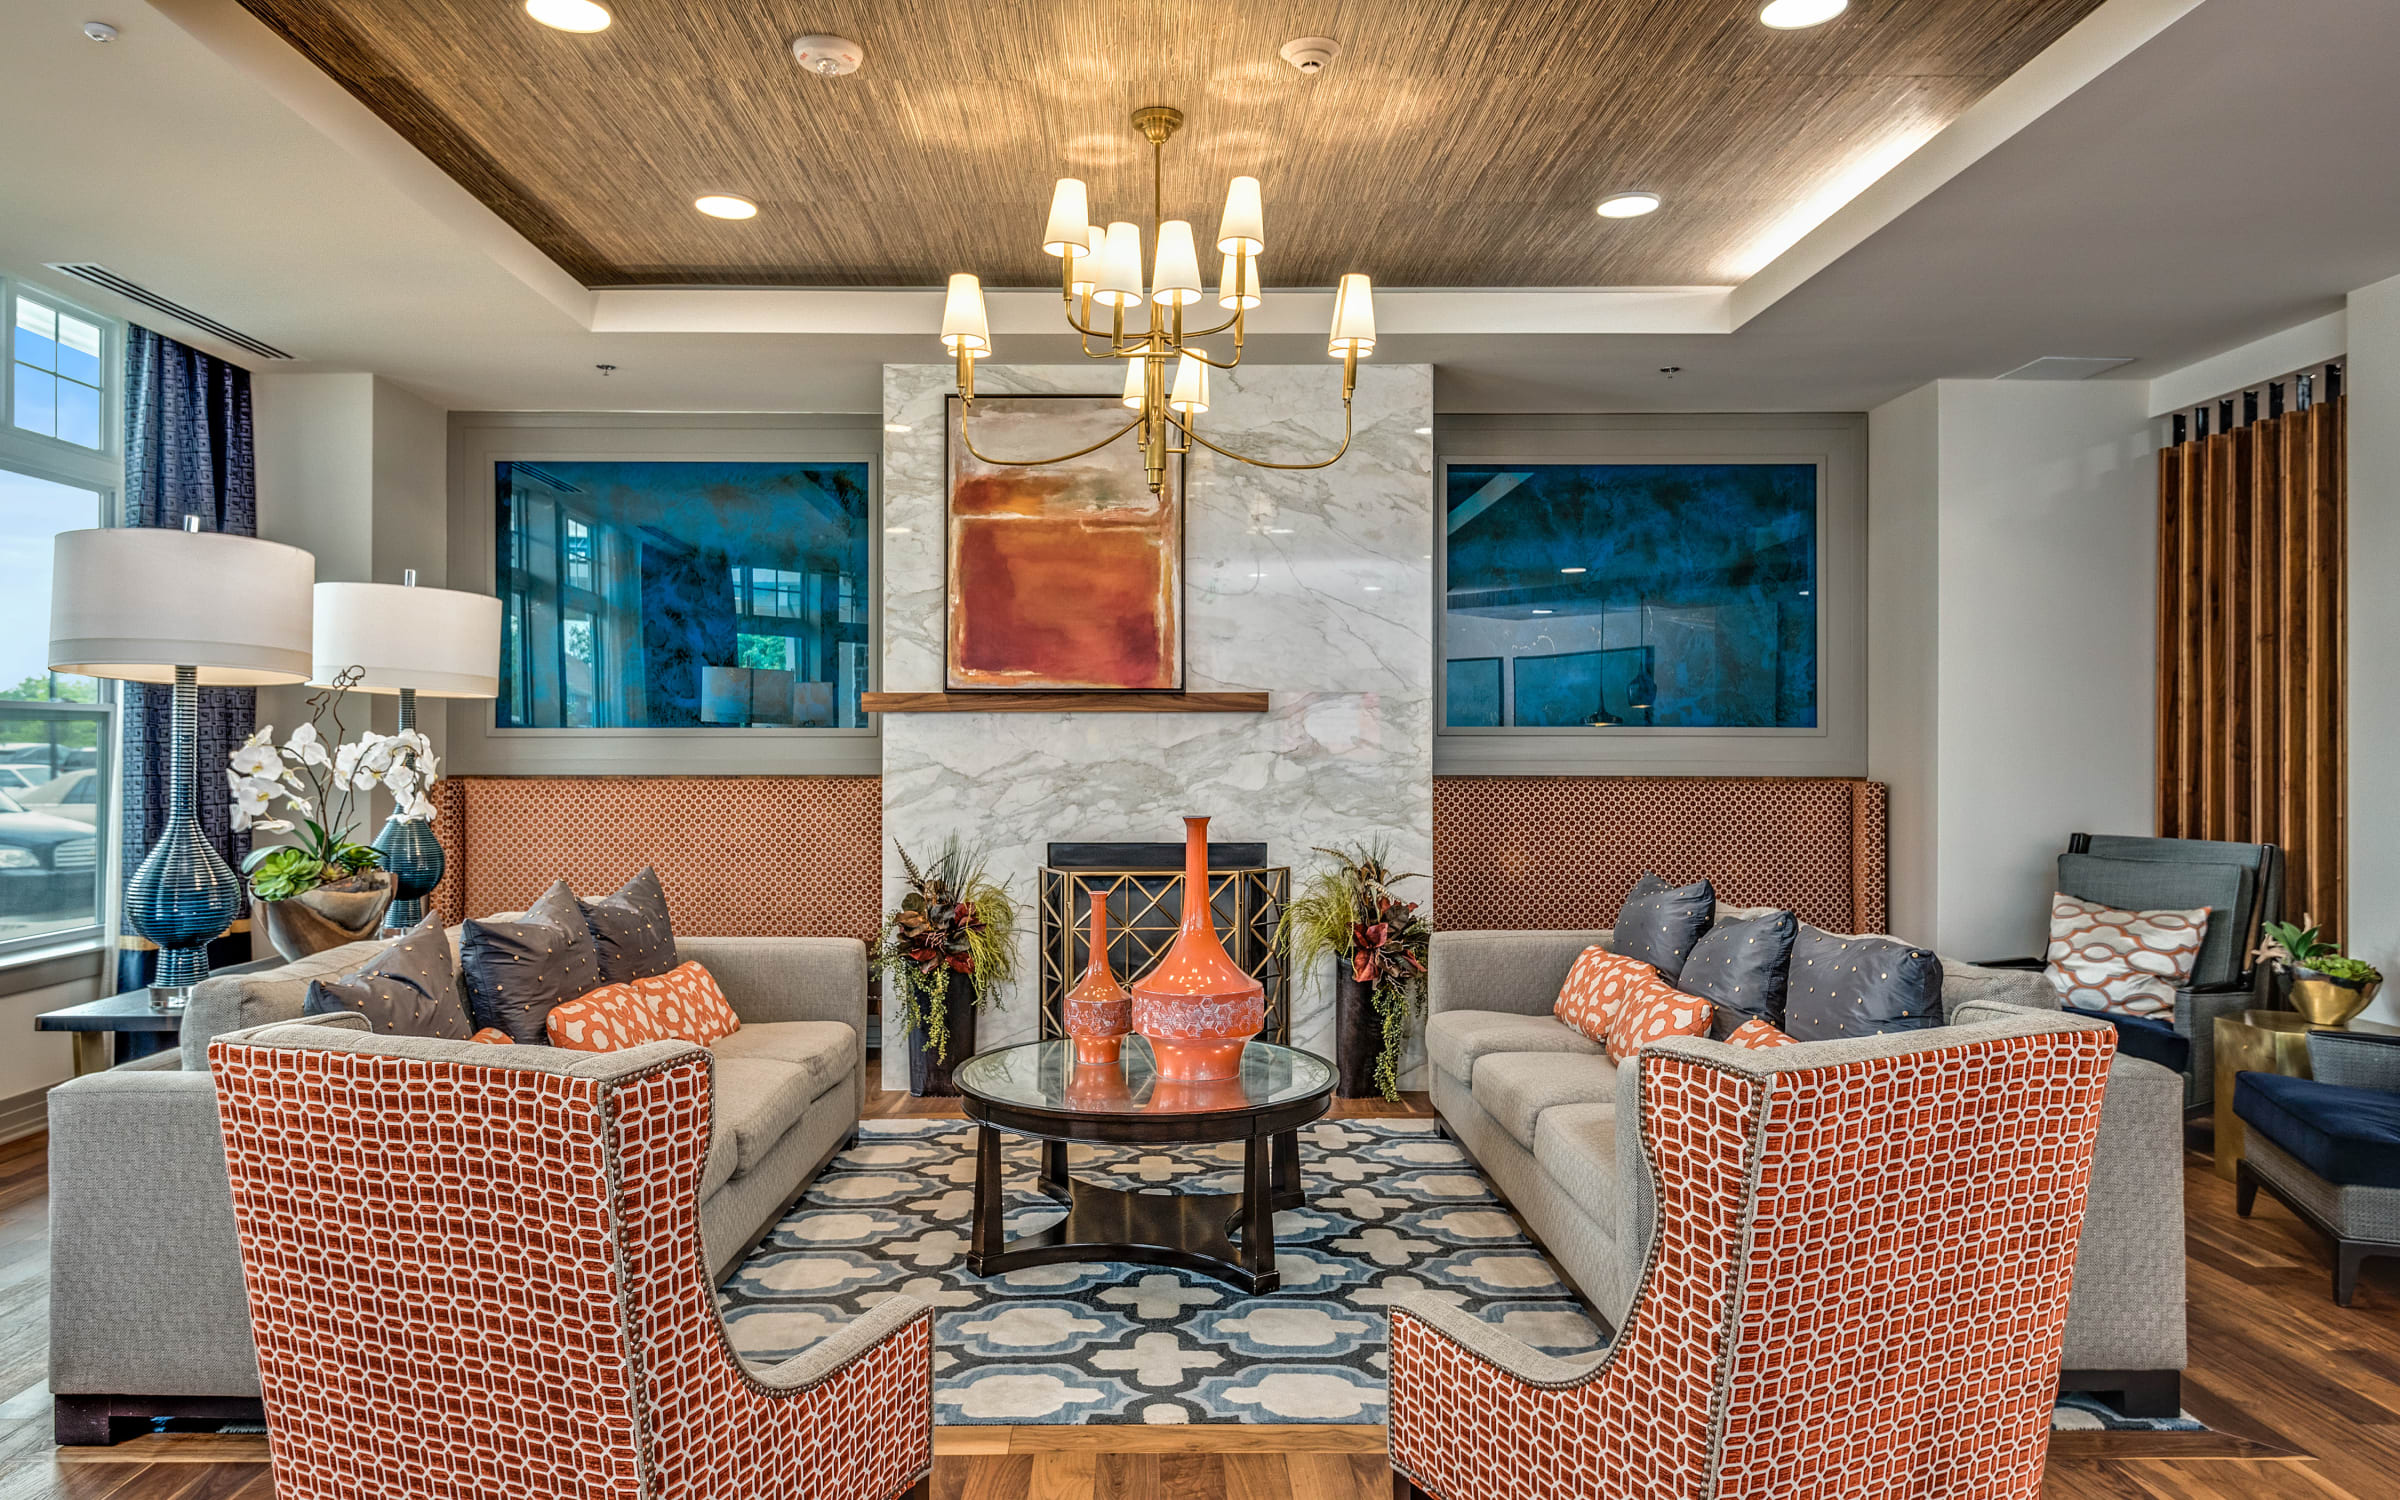 Exclusive offers at Anthology of Clayton View in Saint Louis, Missouri.